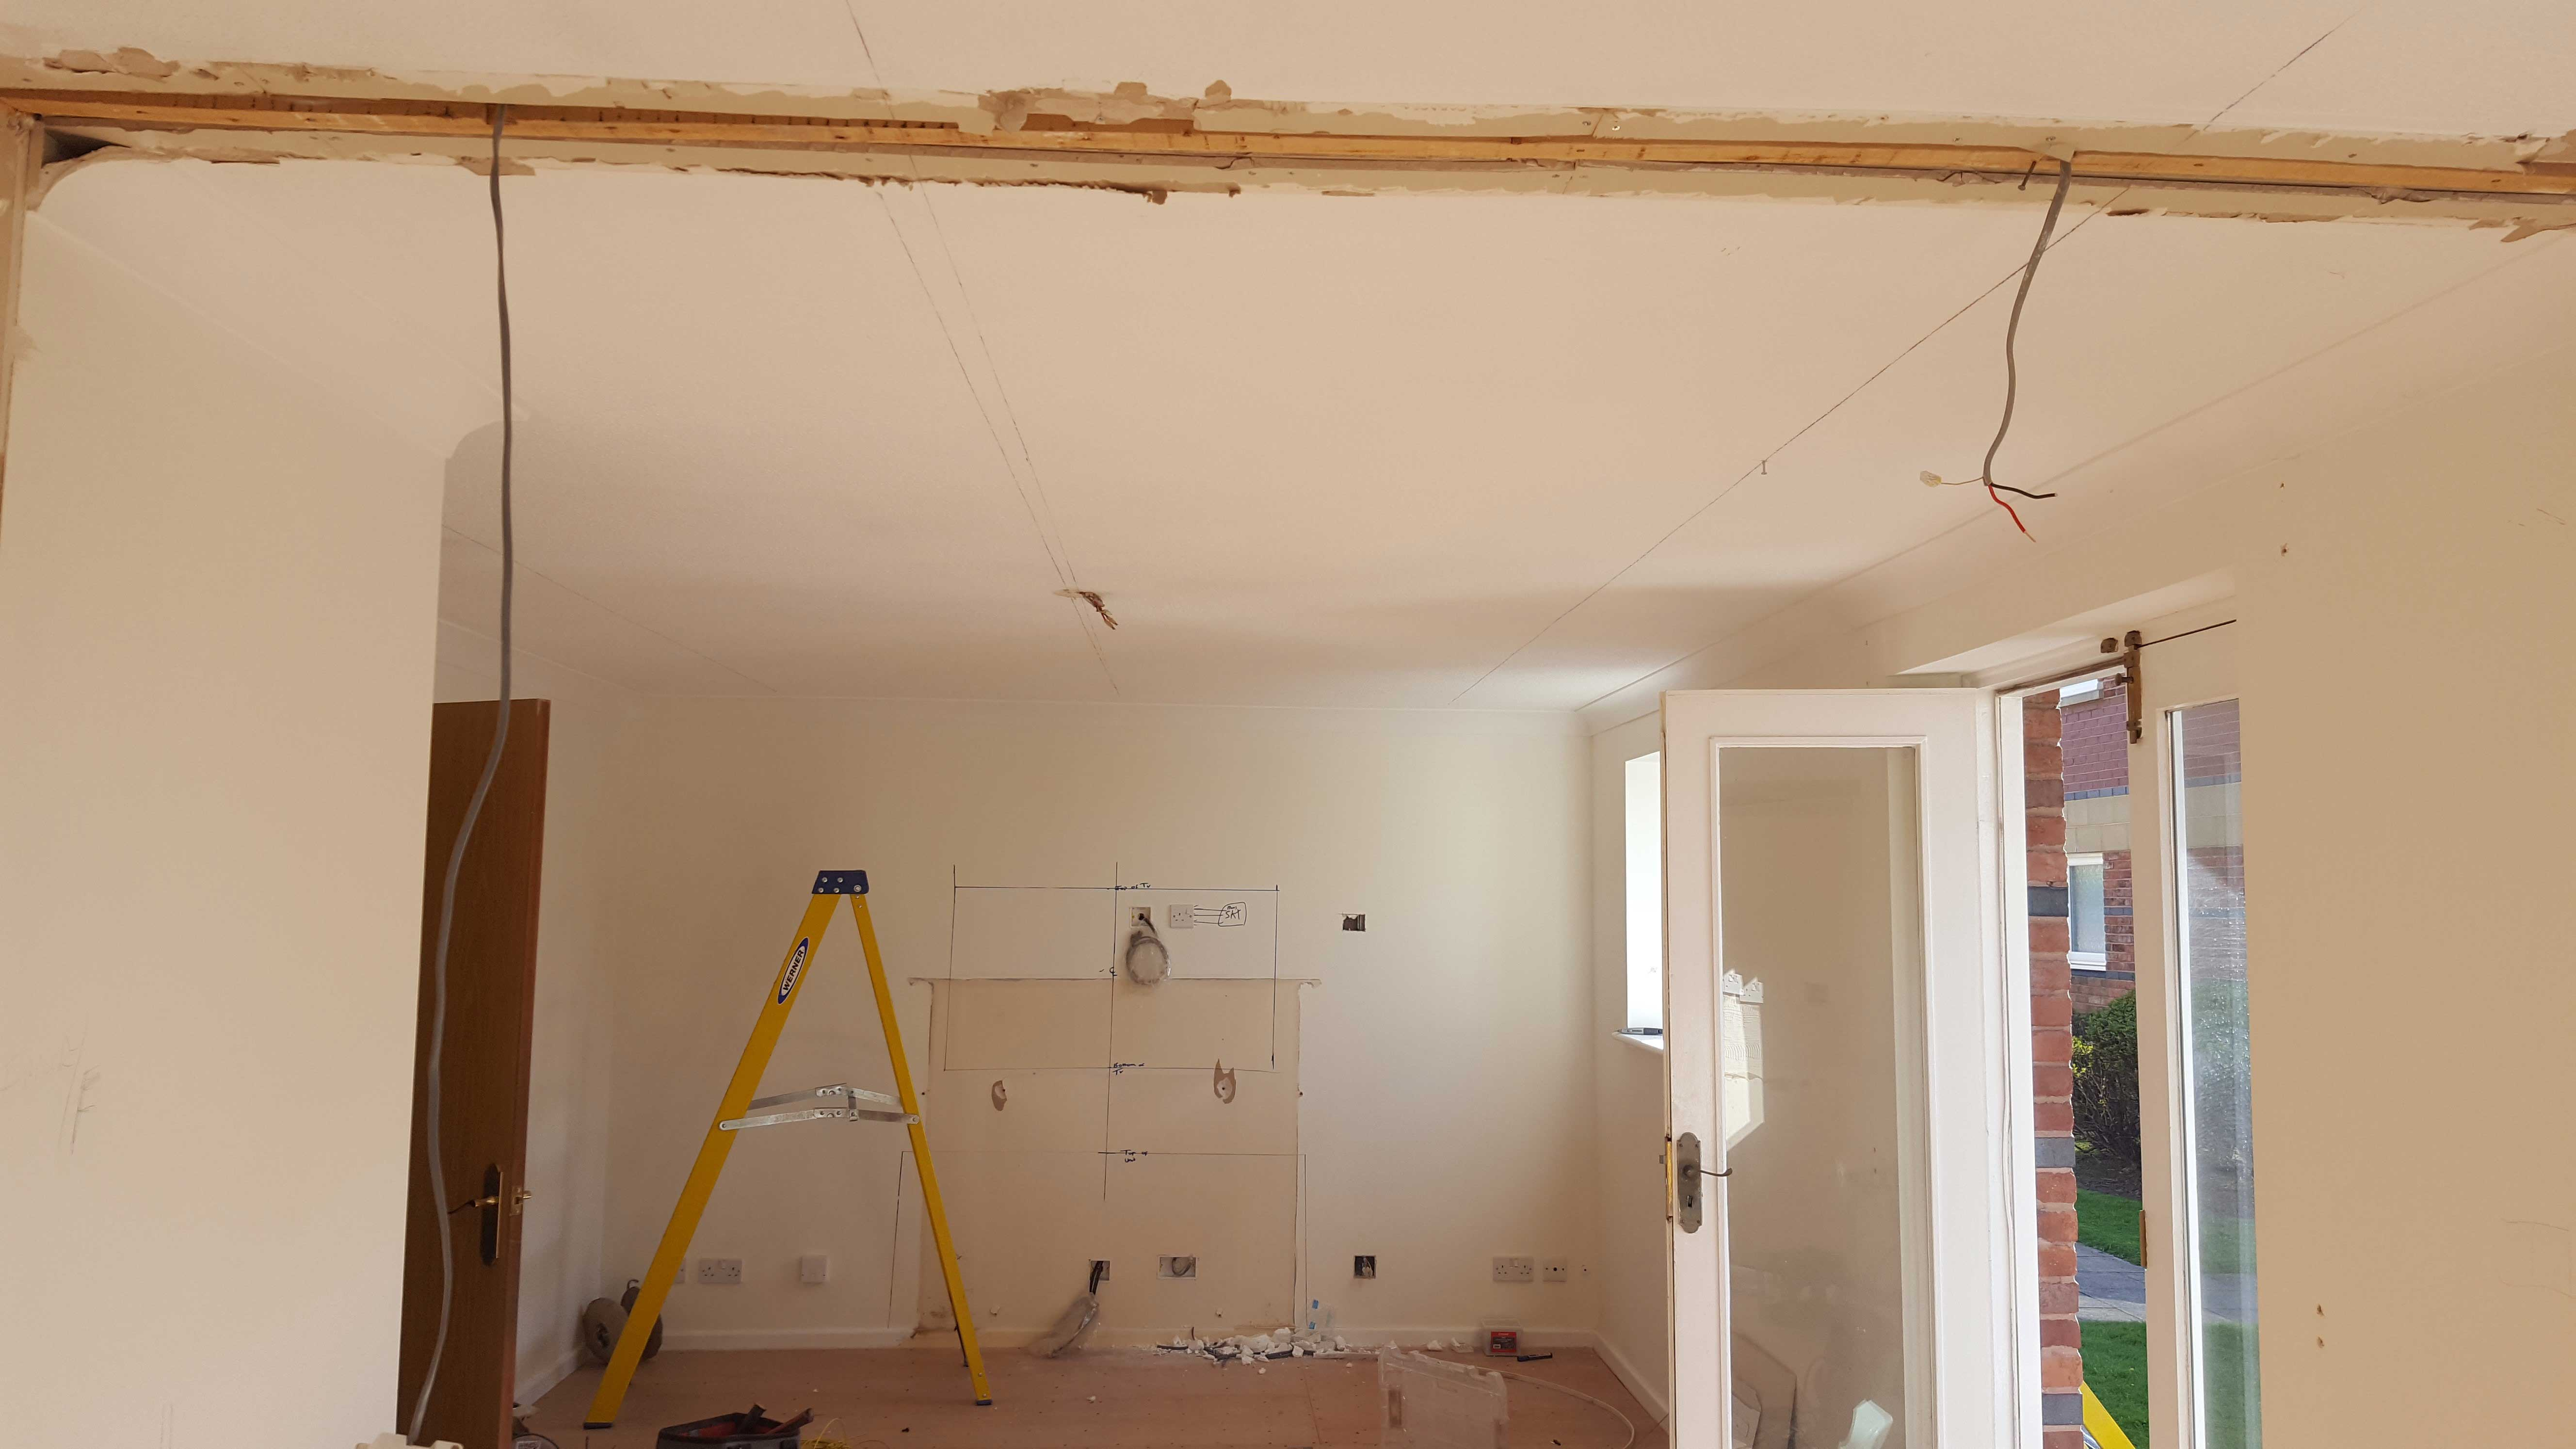 Full Hallway And Kitchen Rewire Tynemouth North East Electrical Rewiring A Room